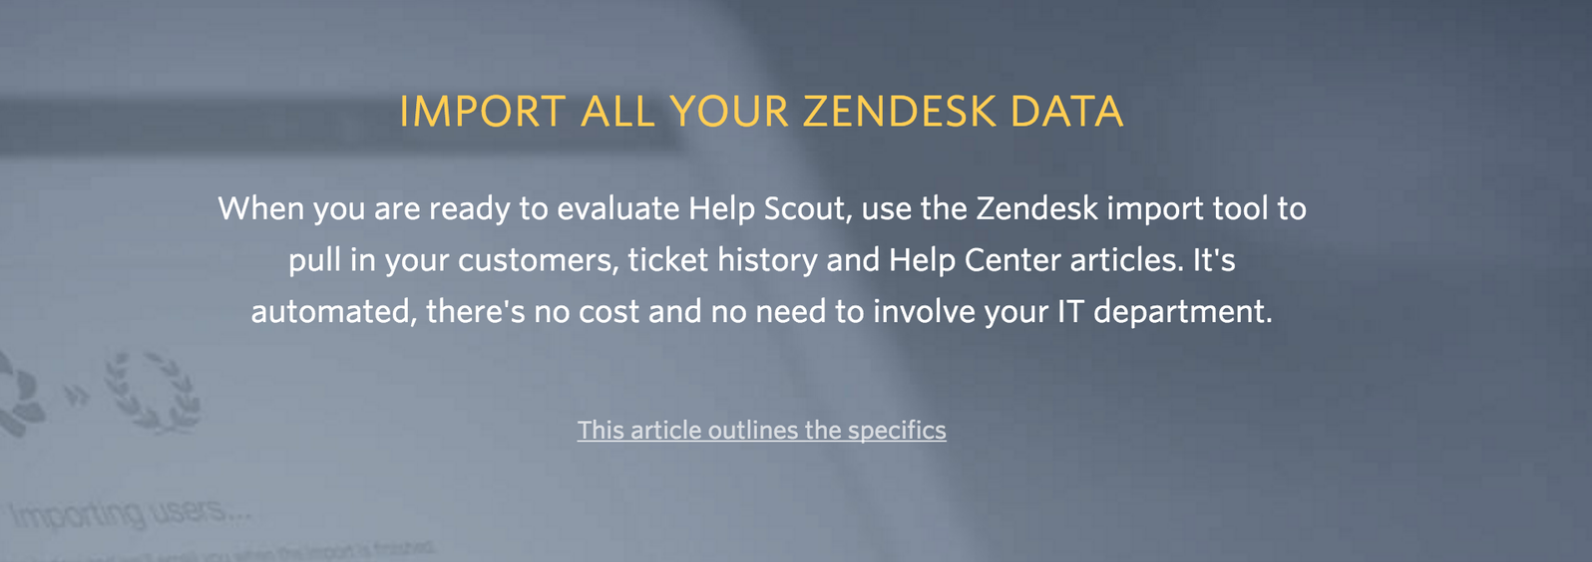 Screenshot of Help Scout banner to promote a switch from Zendesk